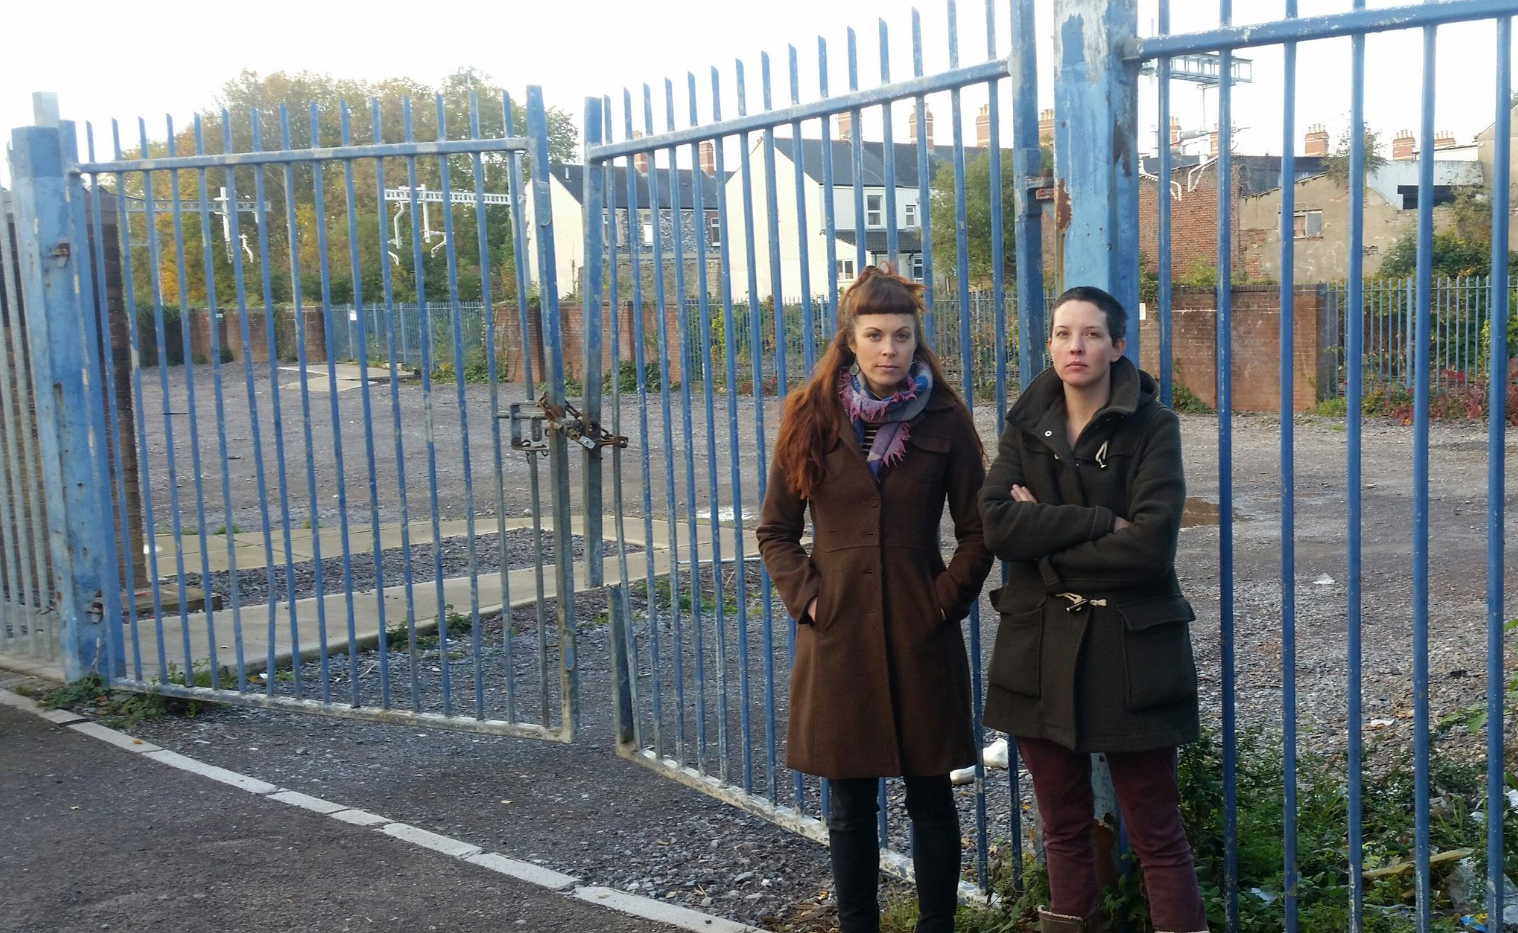 In October 2018 disaster struck - the council informed us that they had decided to sell the land for development - as you can see we were not too pleased with this decision!   With an enormous amount of community support and help from Lucie of the Community Land Advisory Service we were able to arrange a meeting with the council...